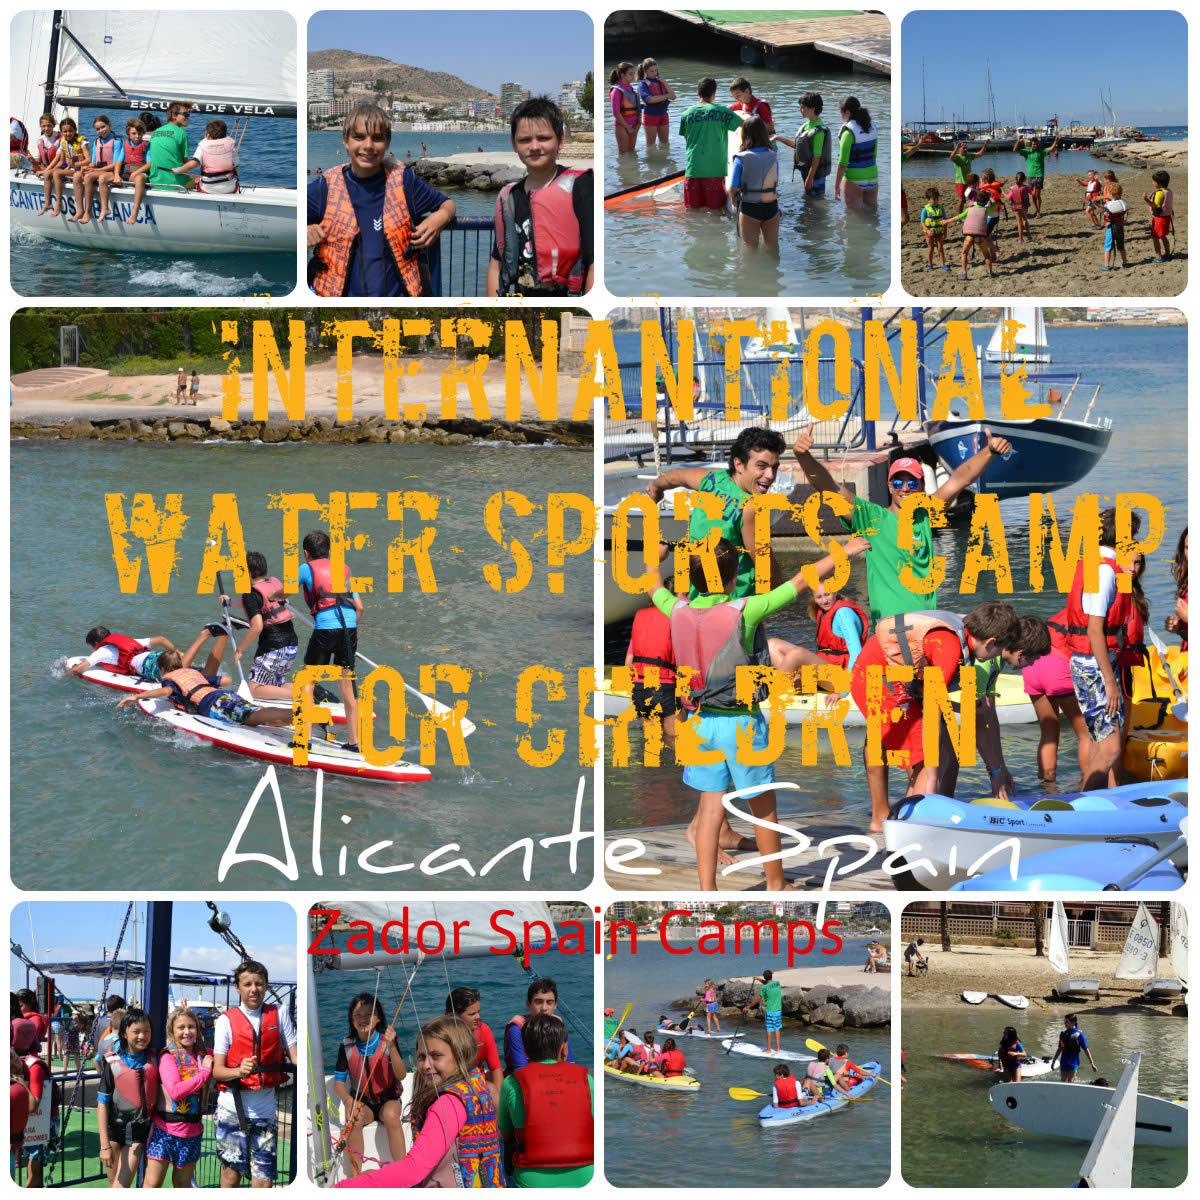 Water Sports Camps for Children Alicante Spain